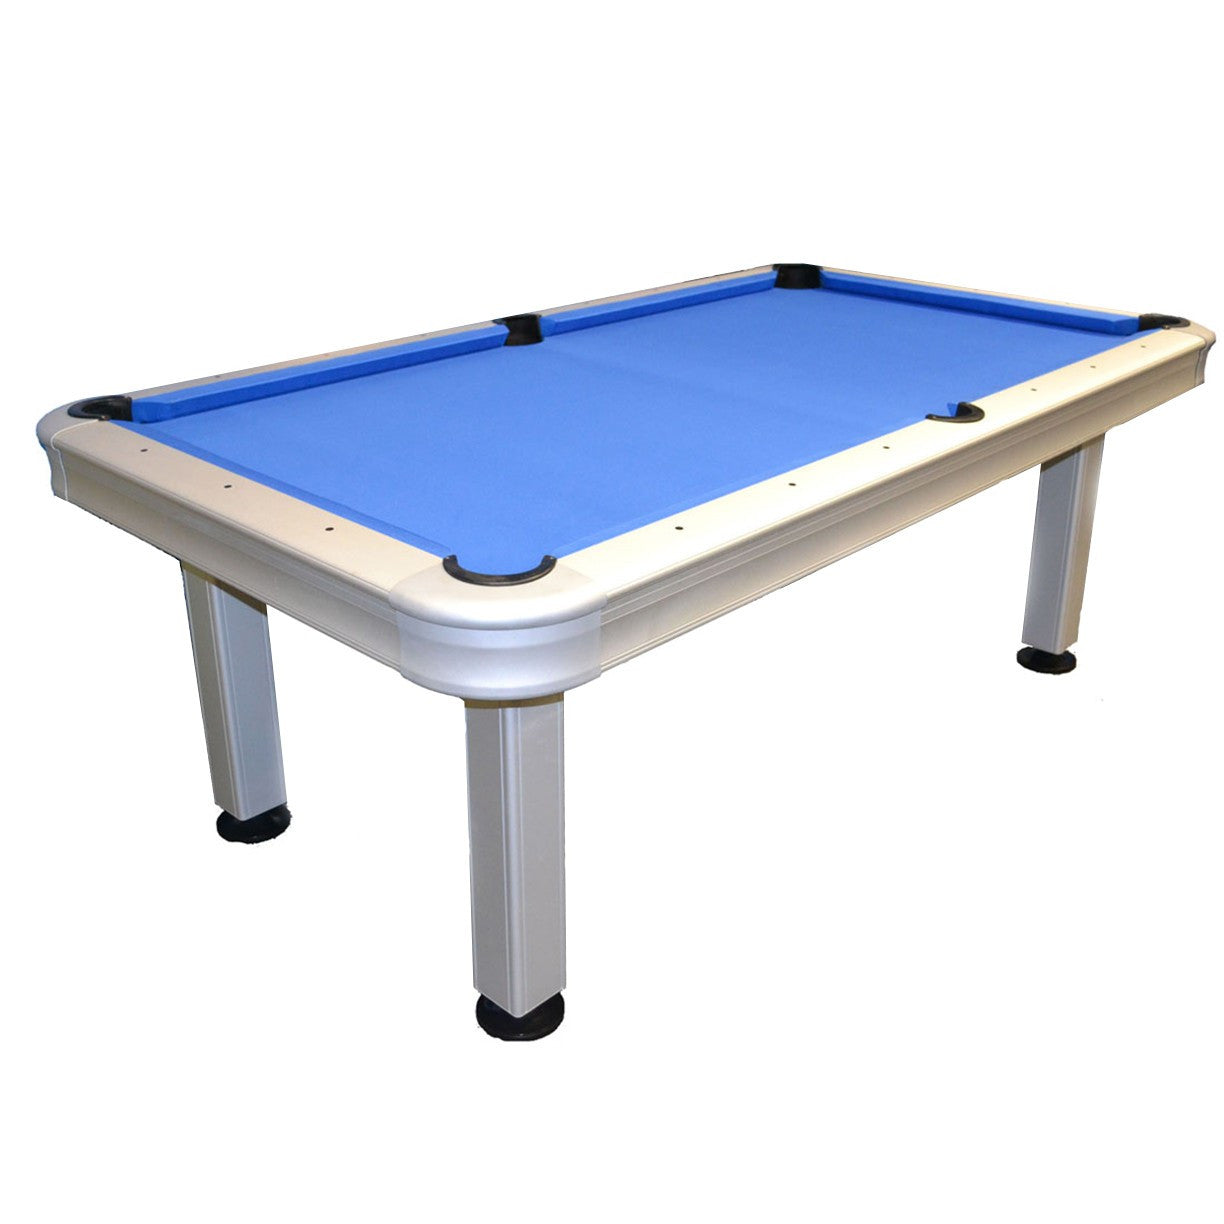 OUTDOOR FT POOL TABLE Fort Worth Billiards Superstore - 7 ft billiard table